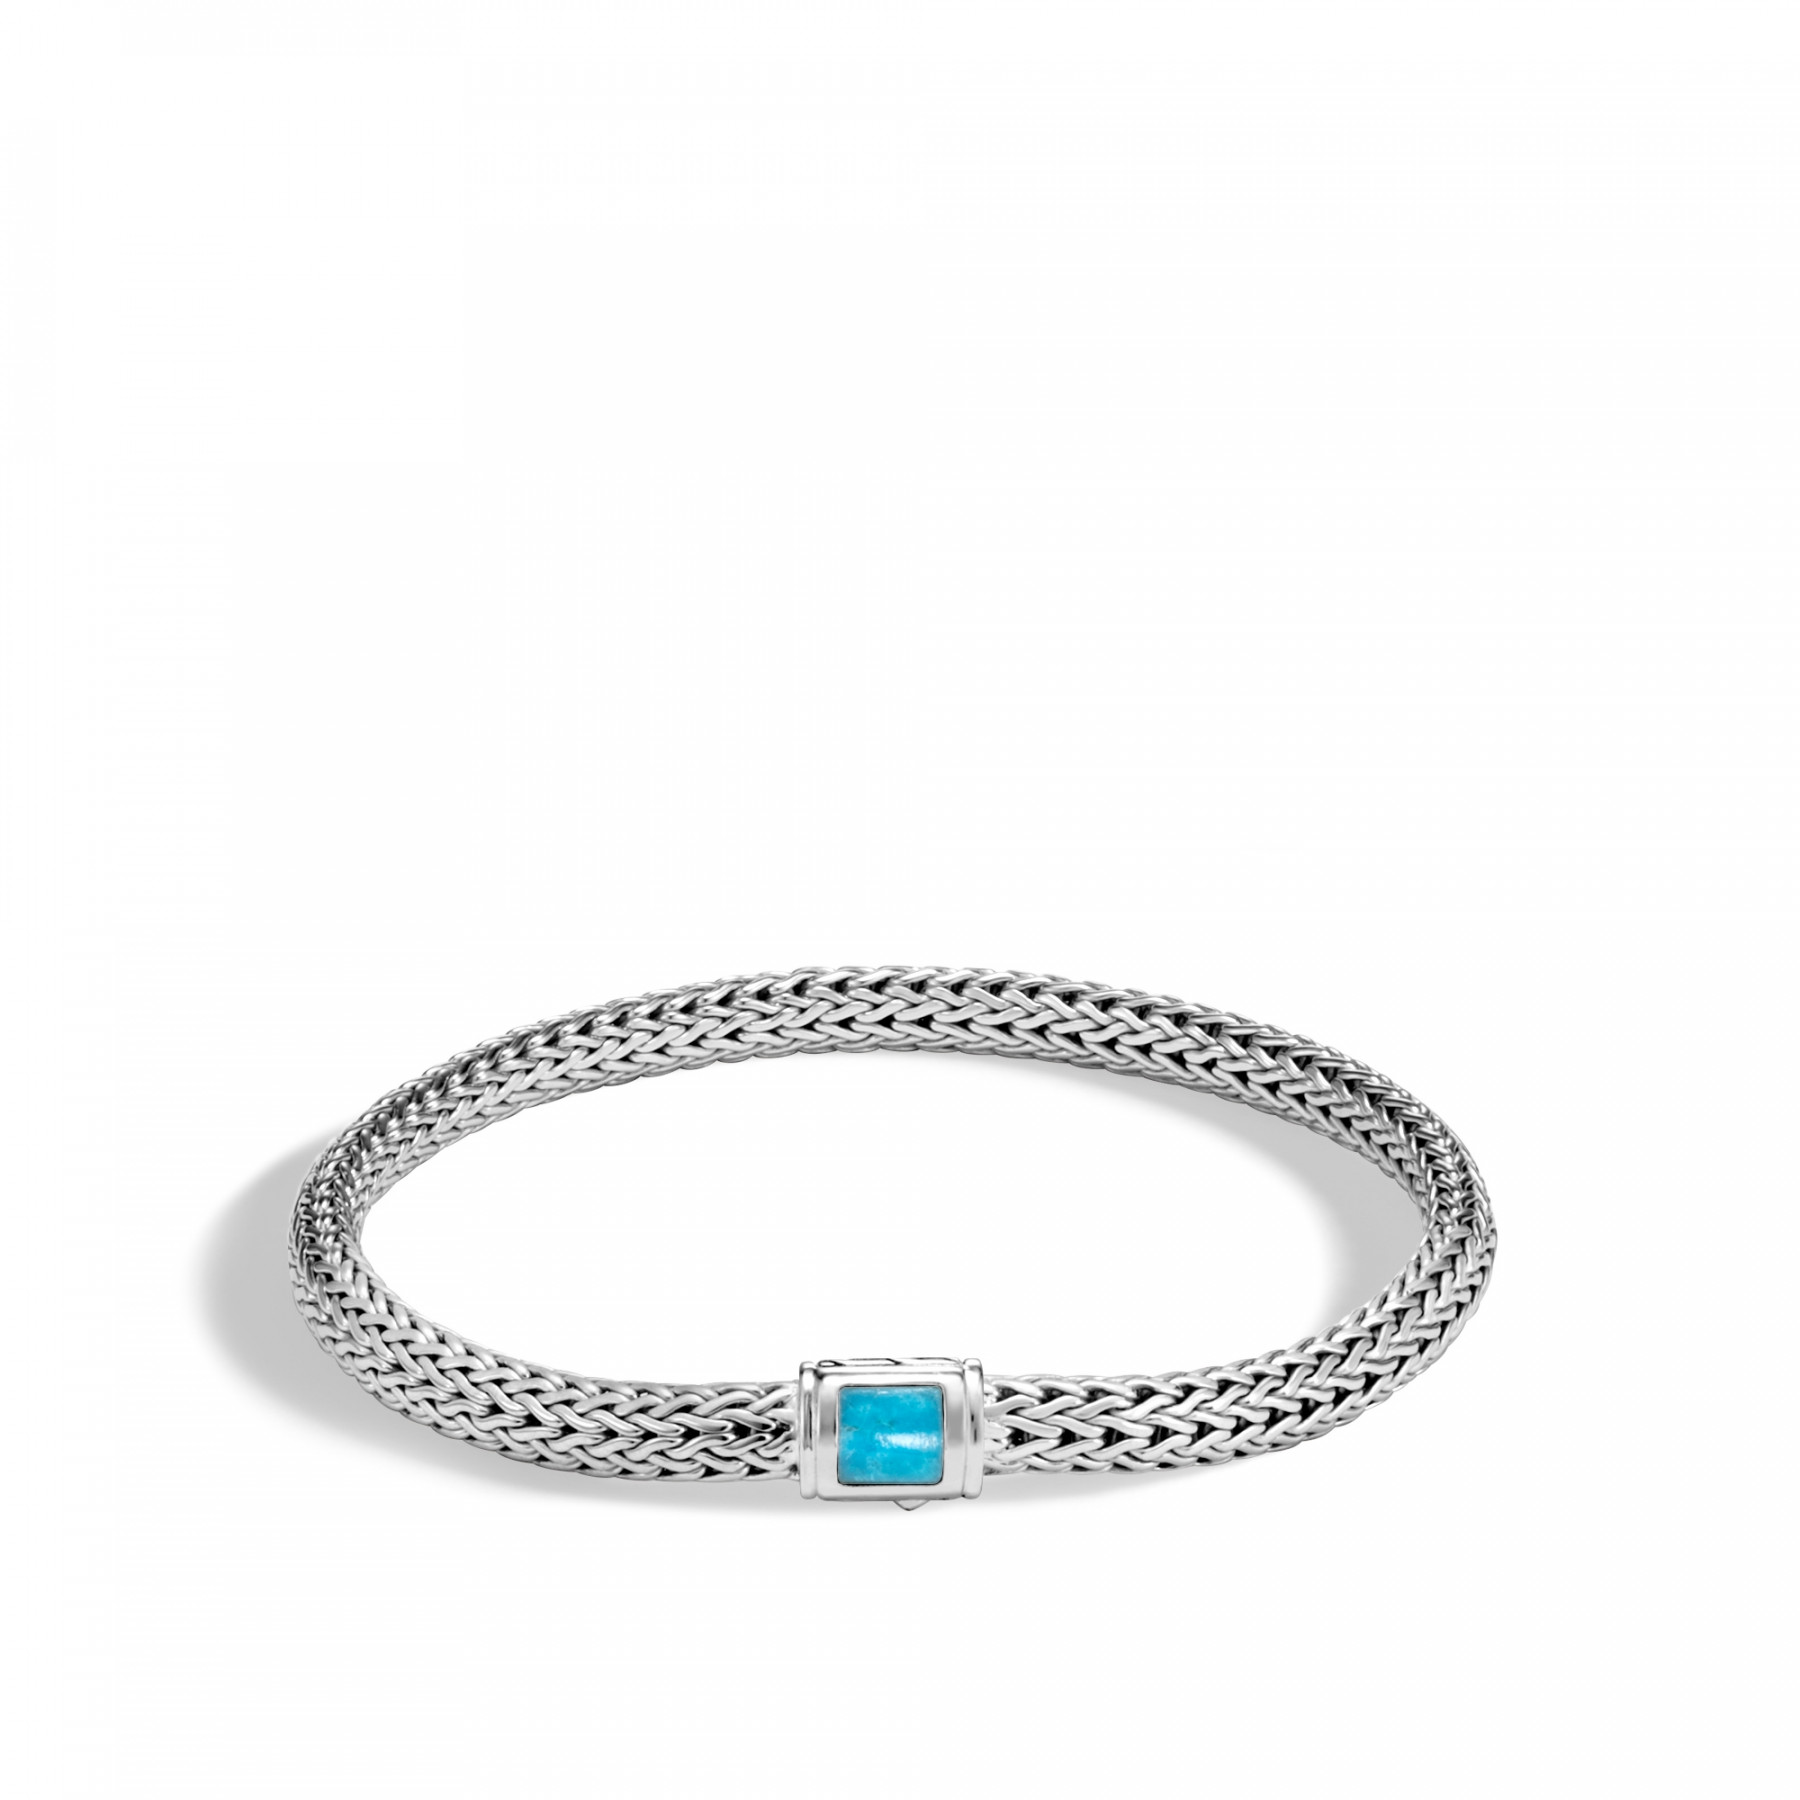 John Hardy Classic Chain 5mm Turquoise Bracelet